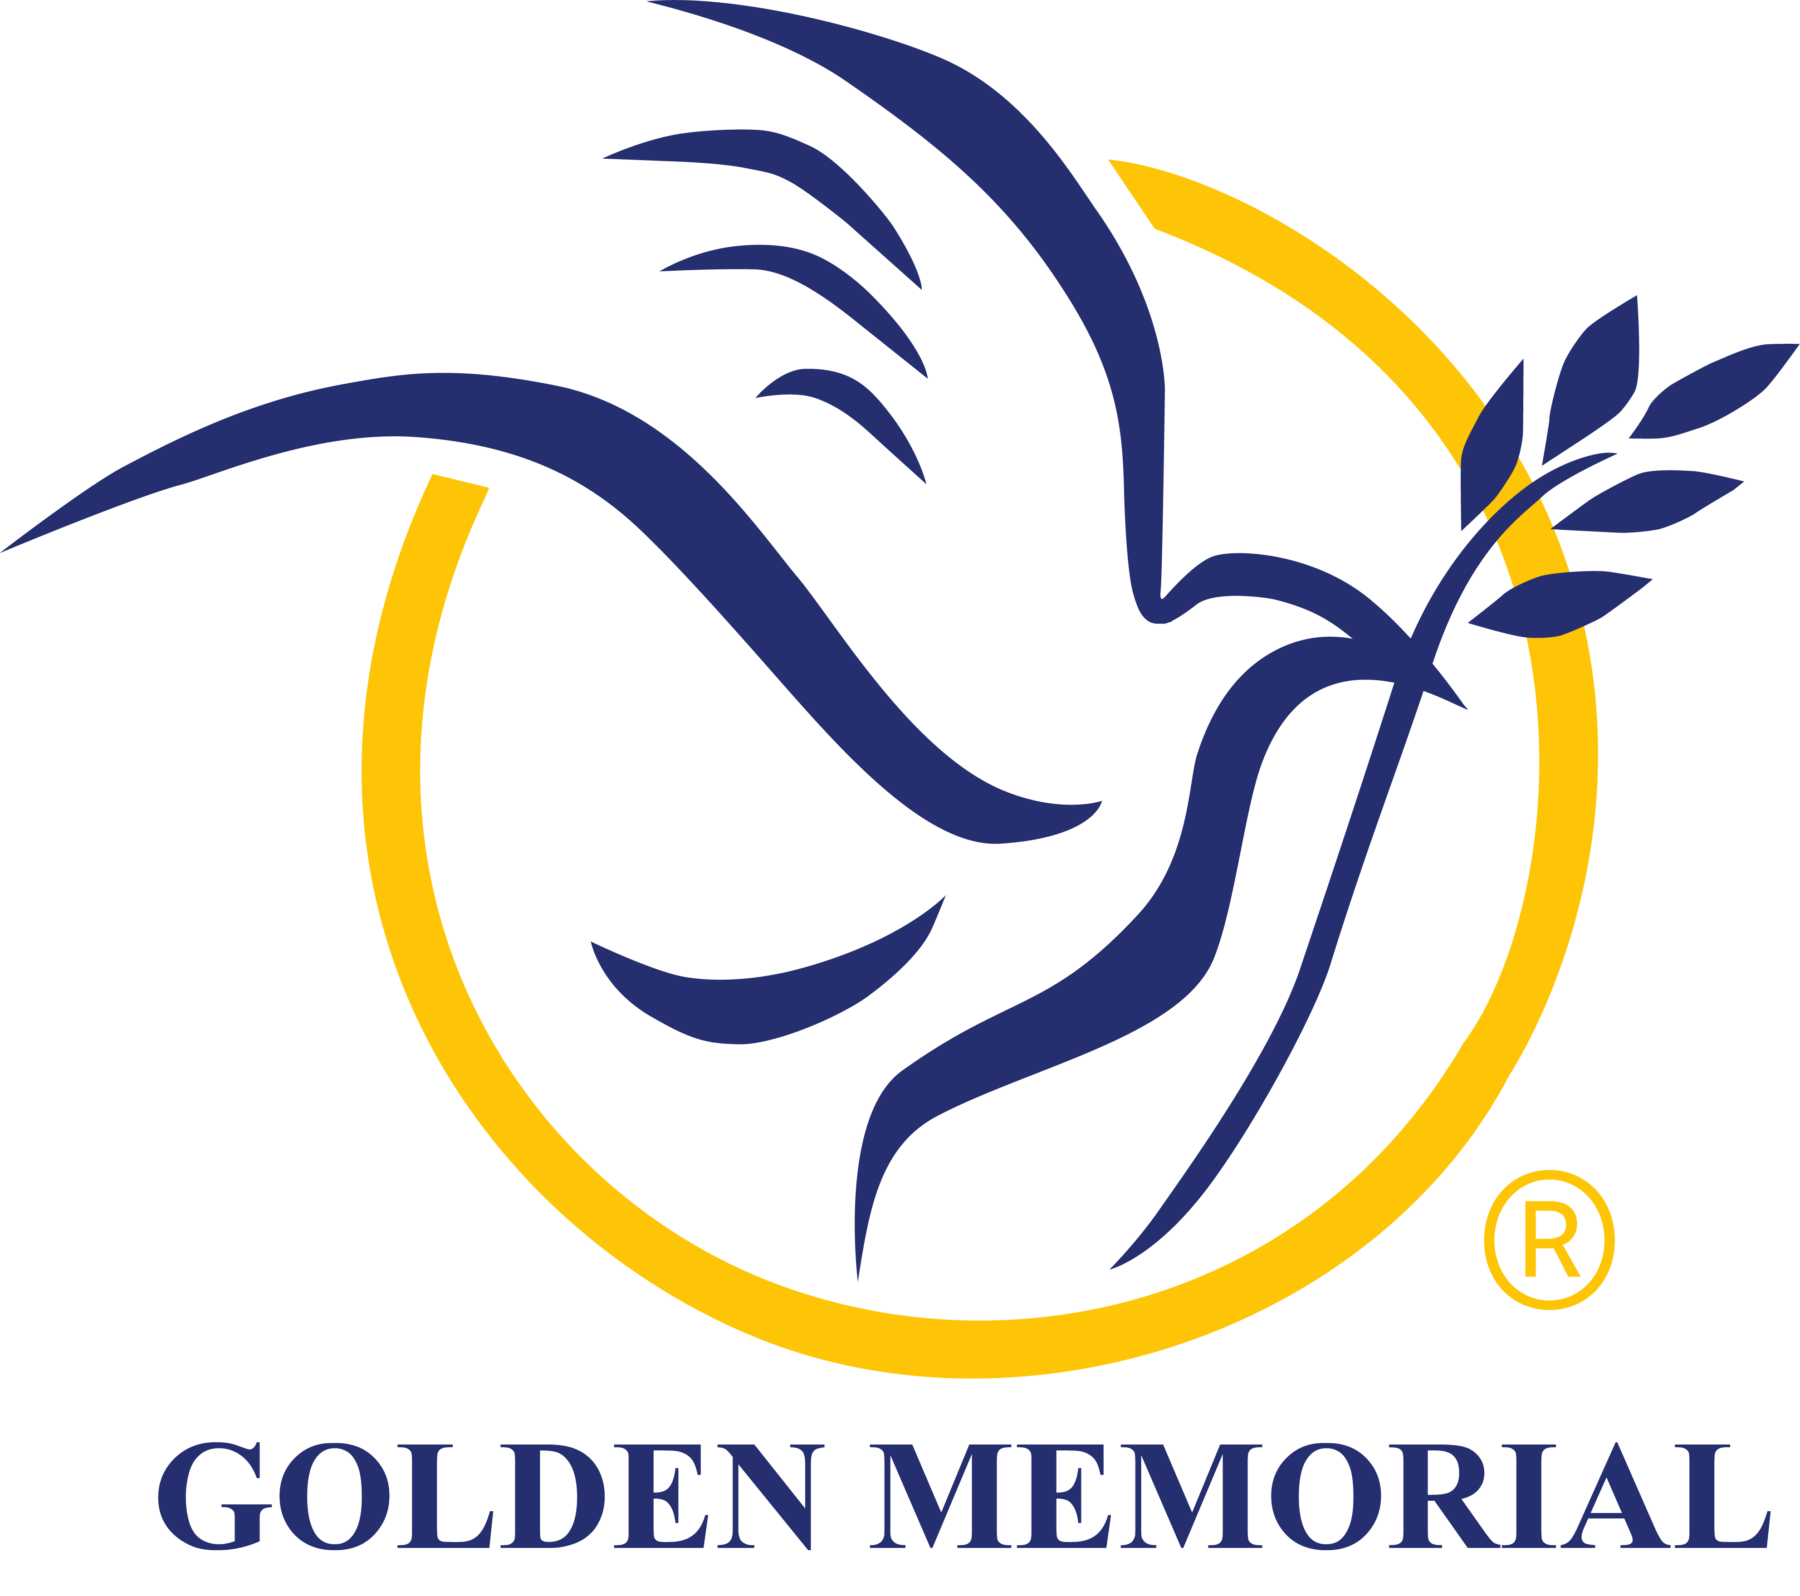 golden memorial logo